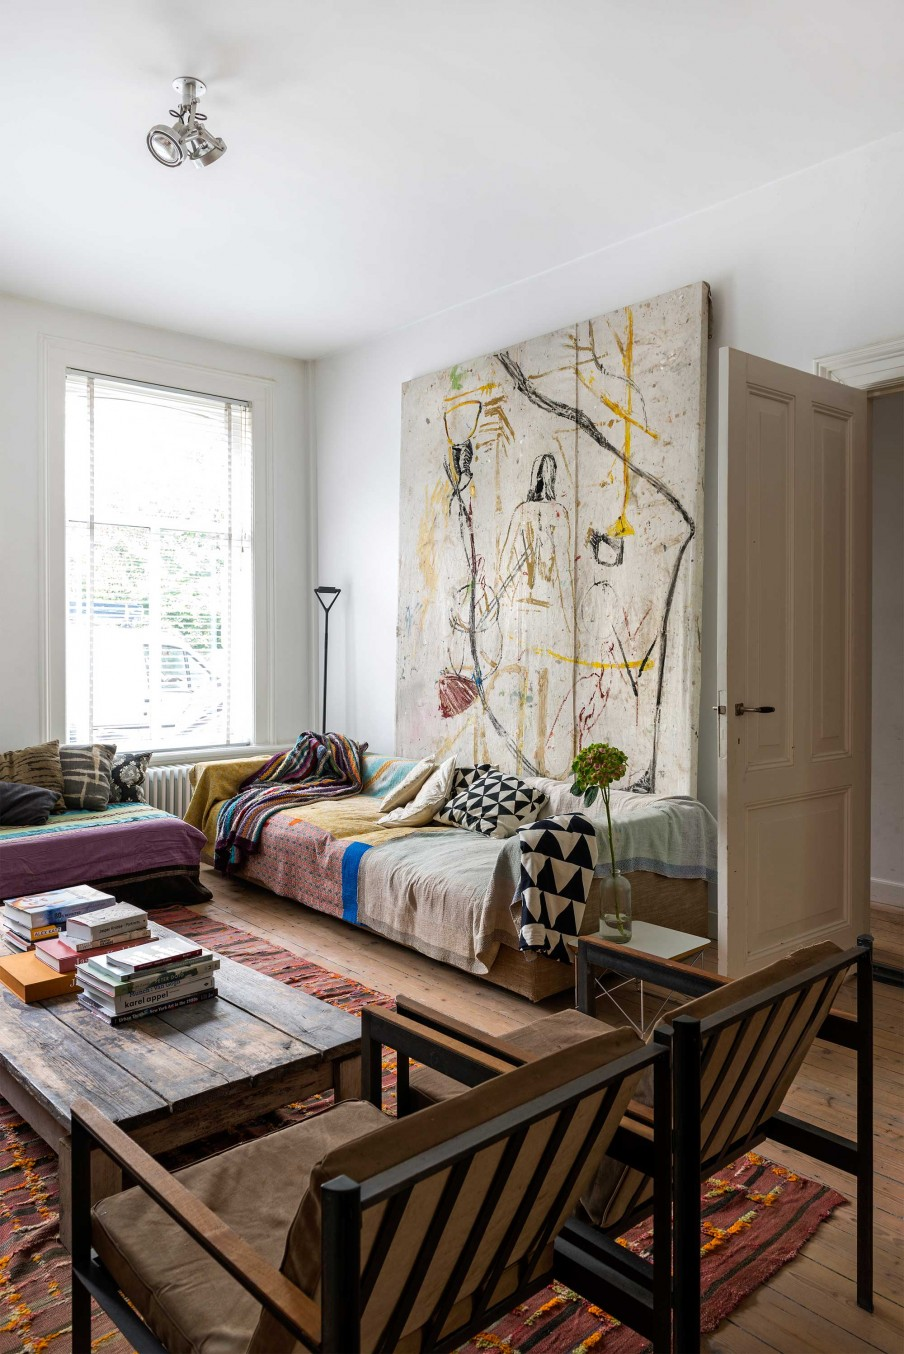 The living room has leather chairs, artworks of the owner and bold boho textiles, it's eclectic